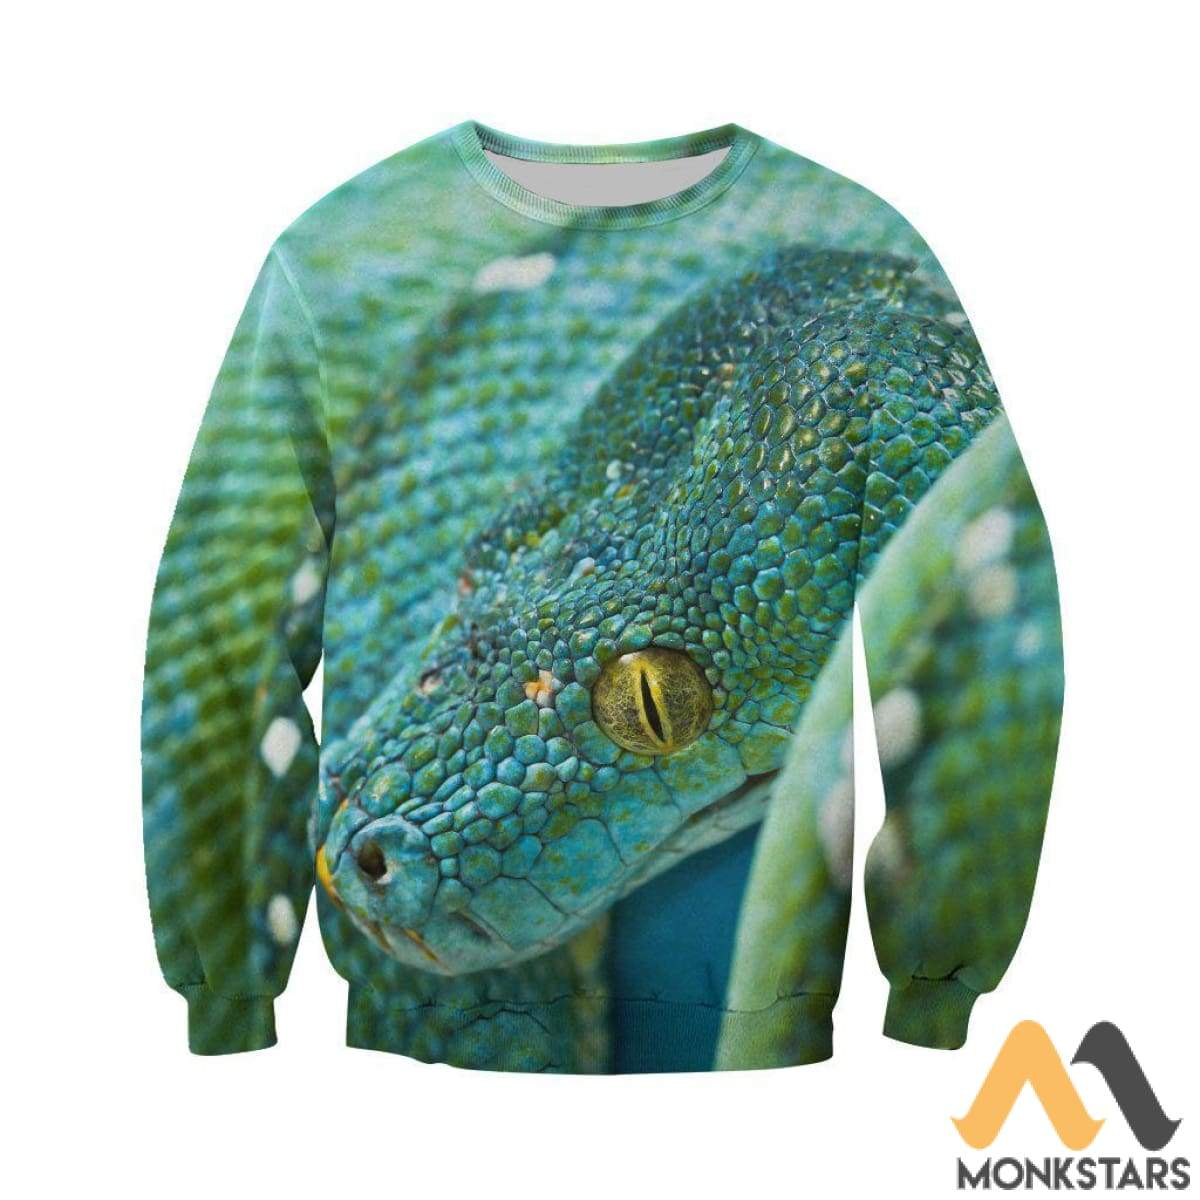 9fe3a9ab3a59 3D All Over Printed Green Snake Art Shirts and Shorts - Monkstars Inc.